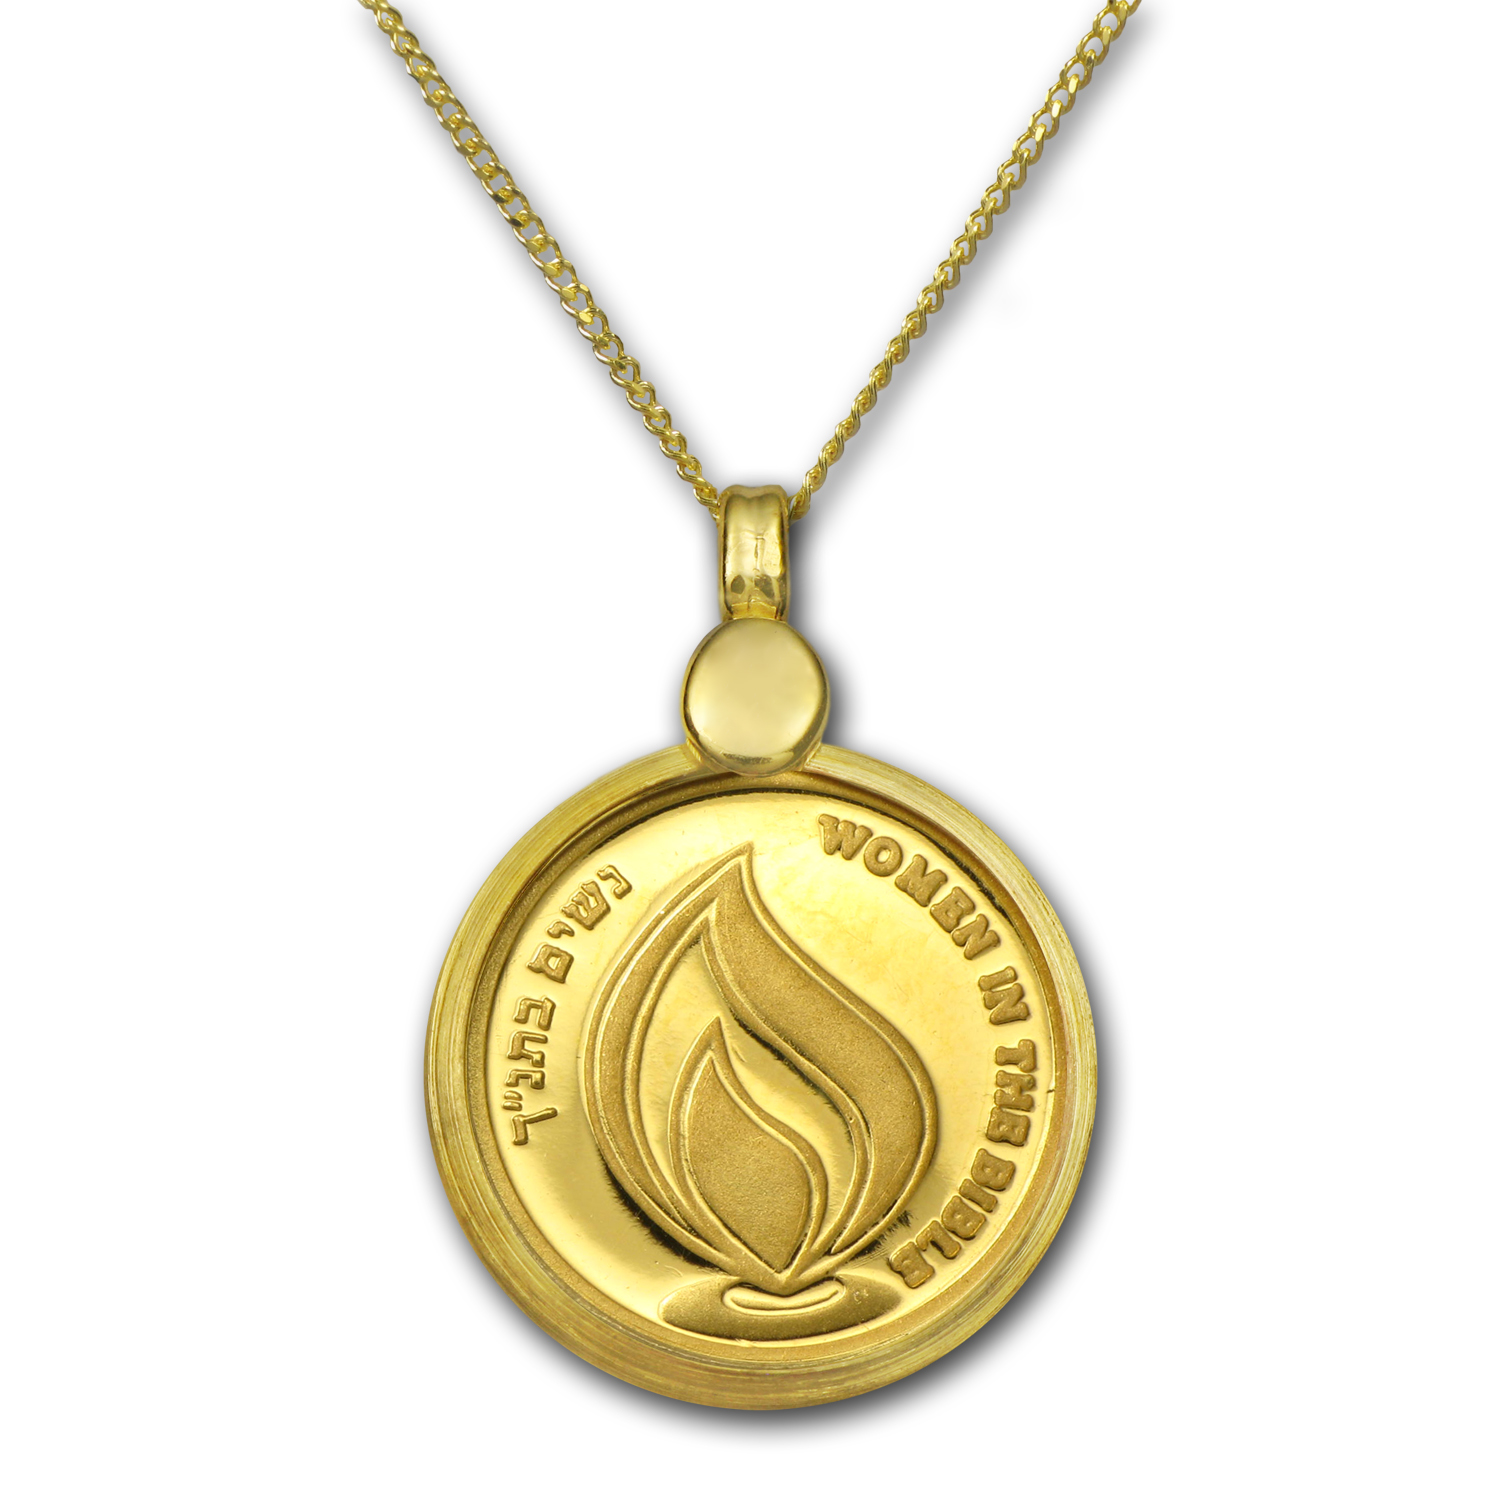 14K Gold Israel Leah Necklace (AGW .0729 oz)